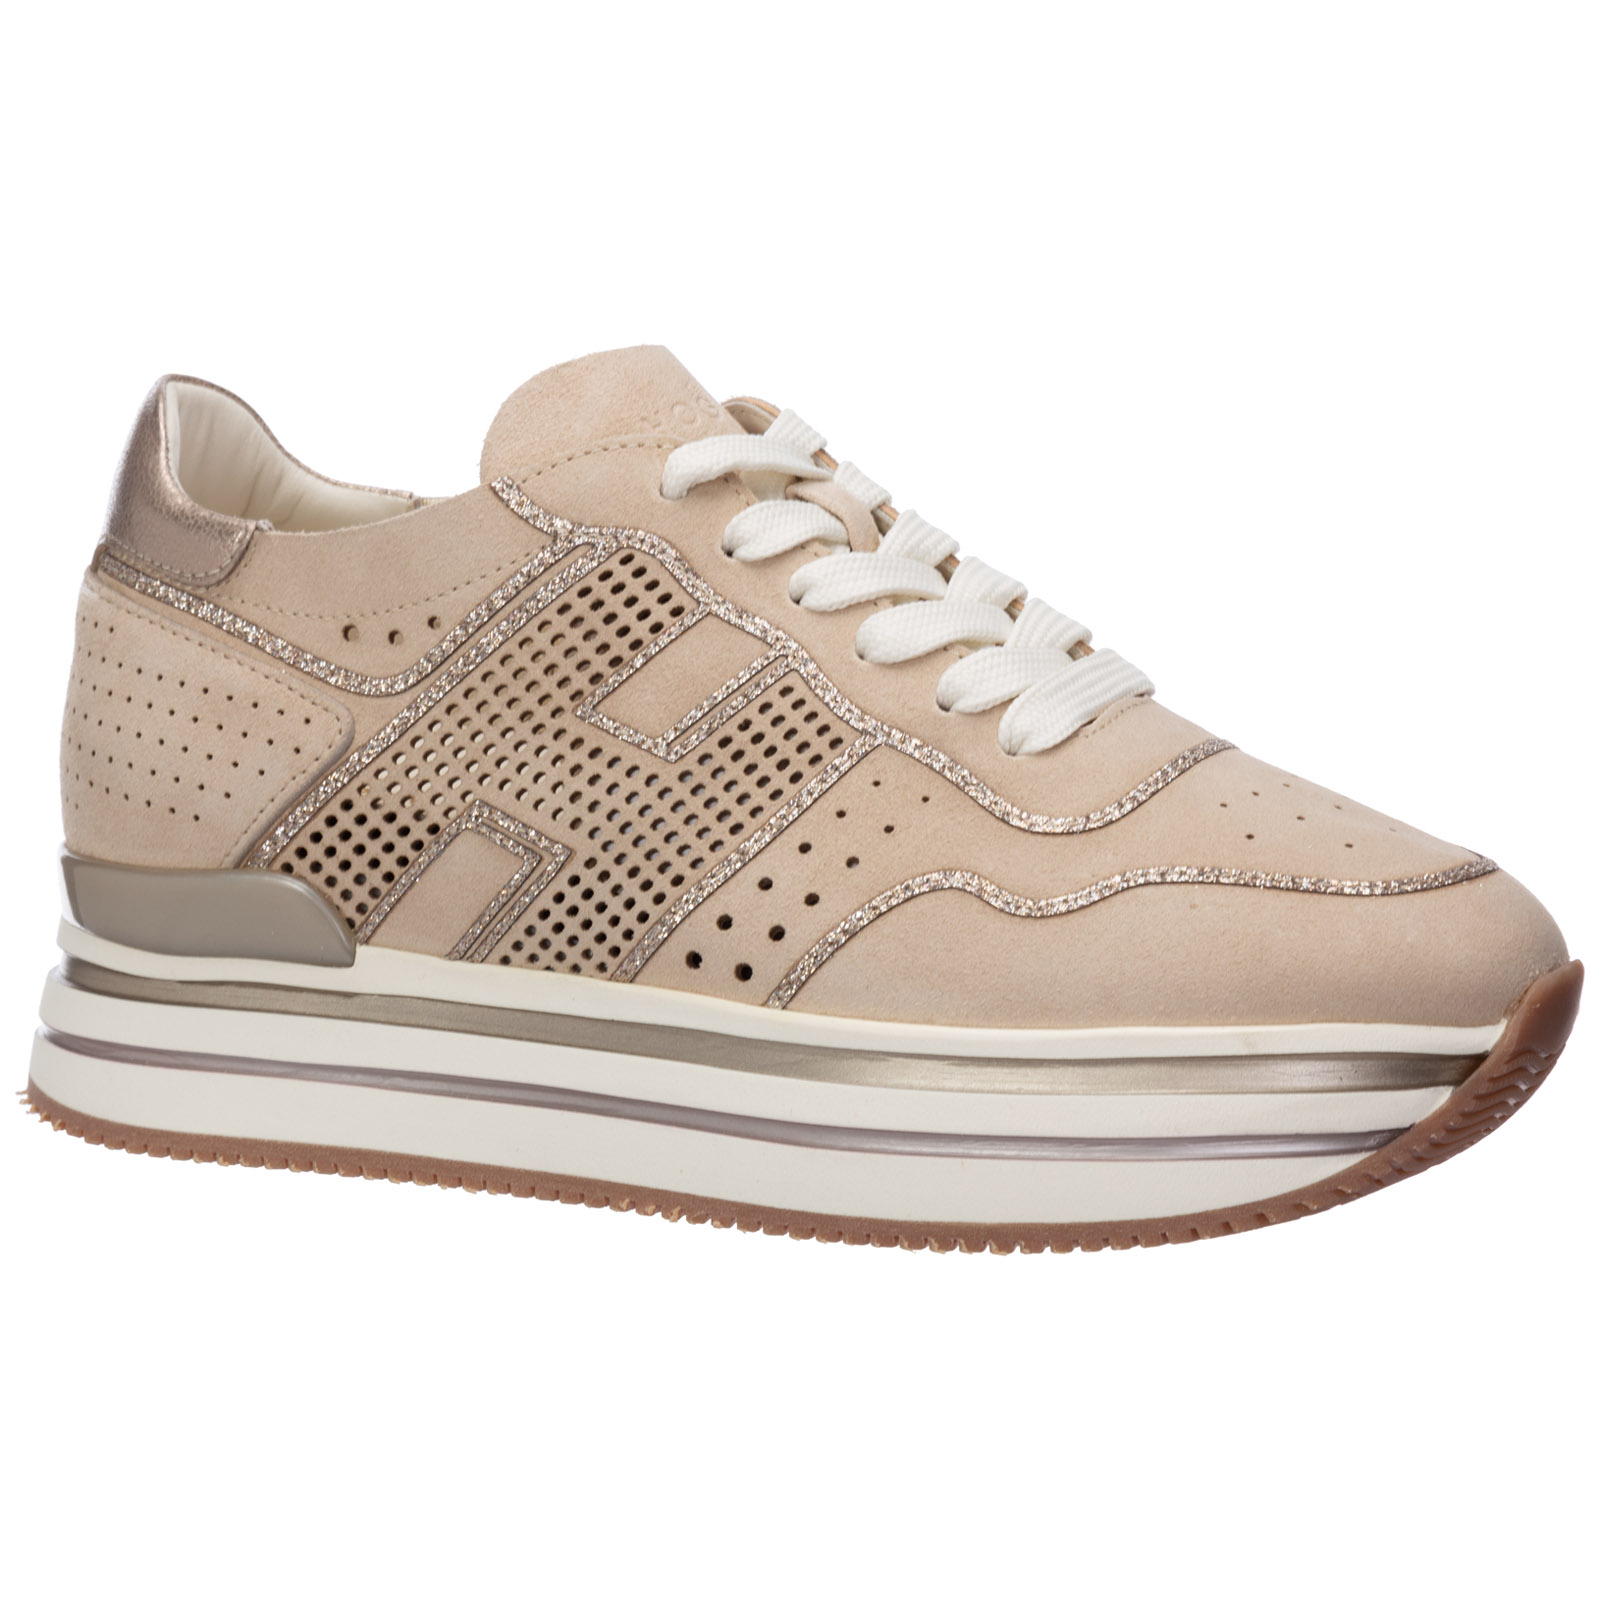 Women's shoes suede trainers sneakers midi h222